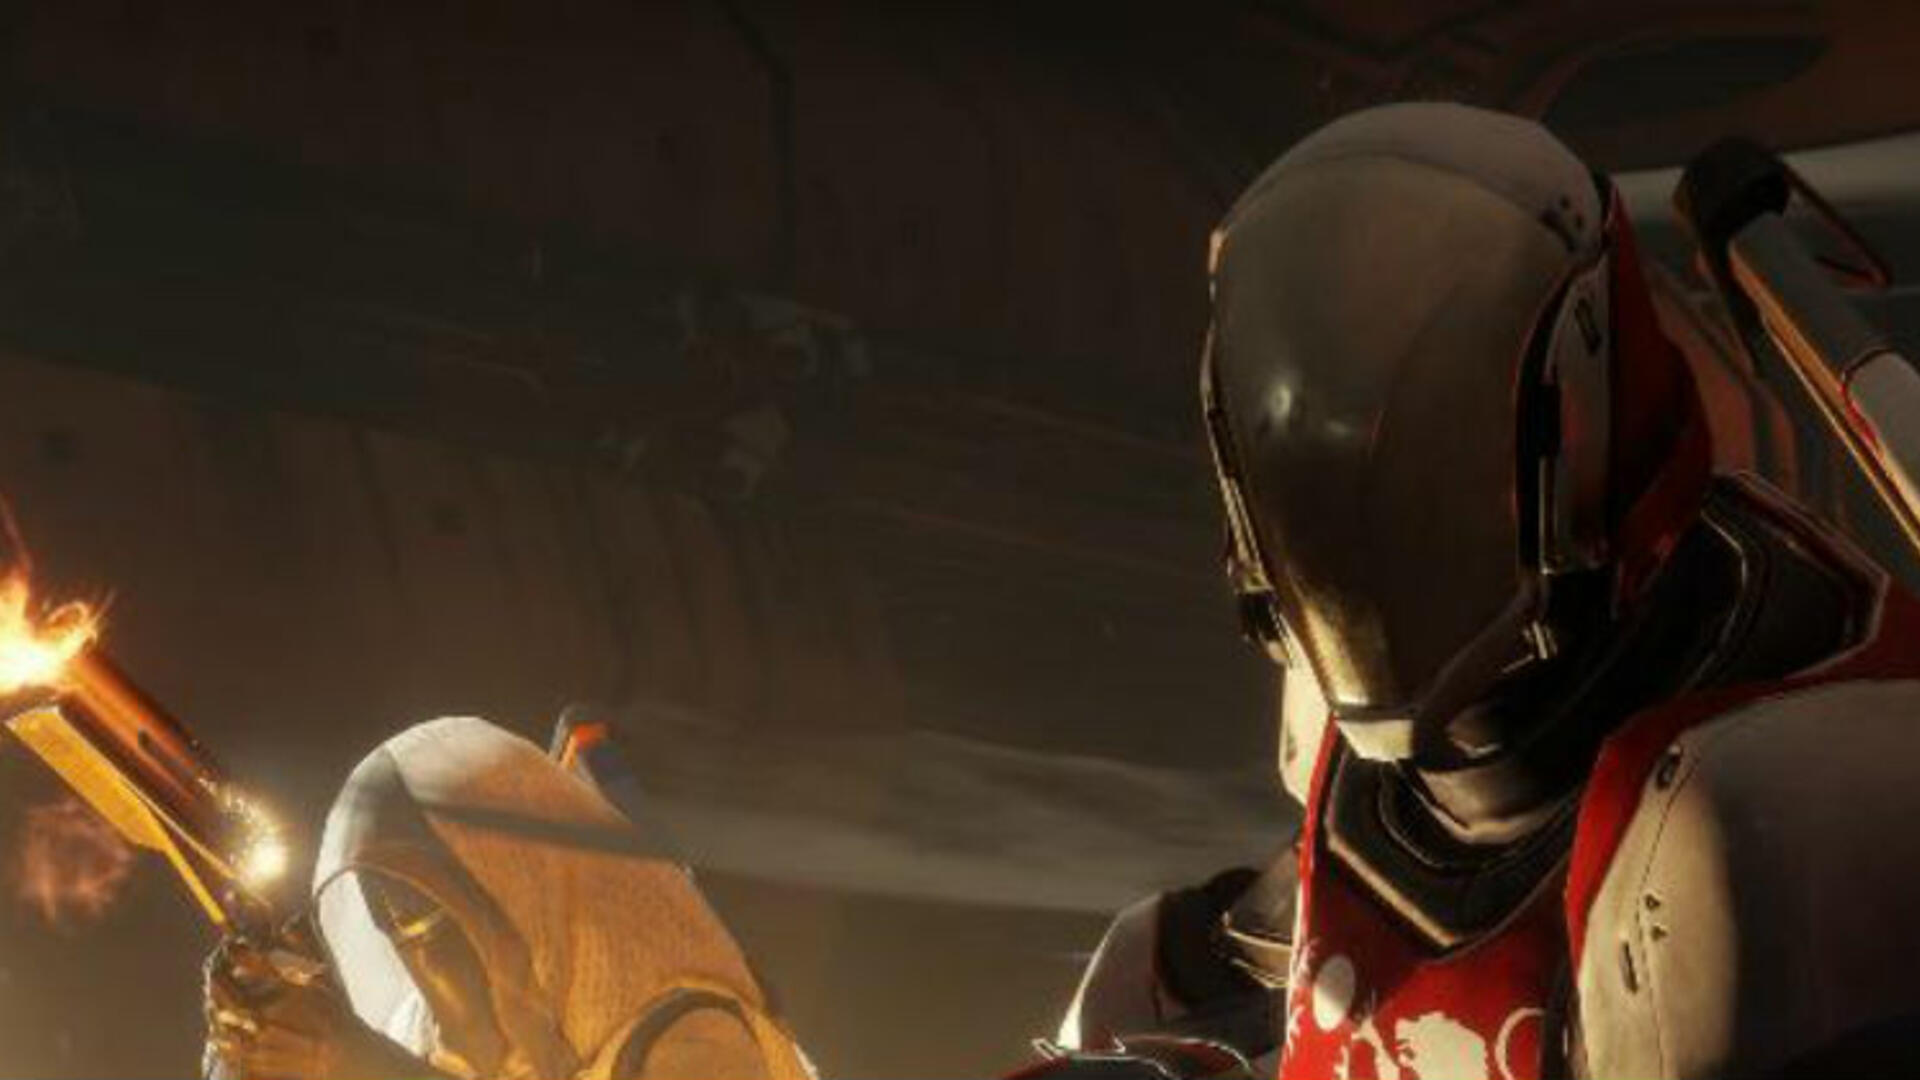 WoW Token Prices Hit Record High After Destiny 2 News